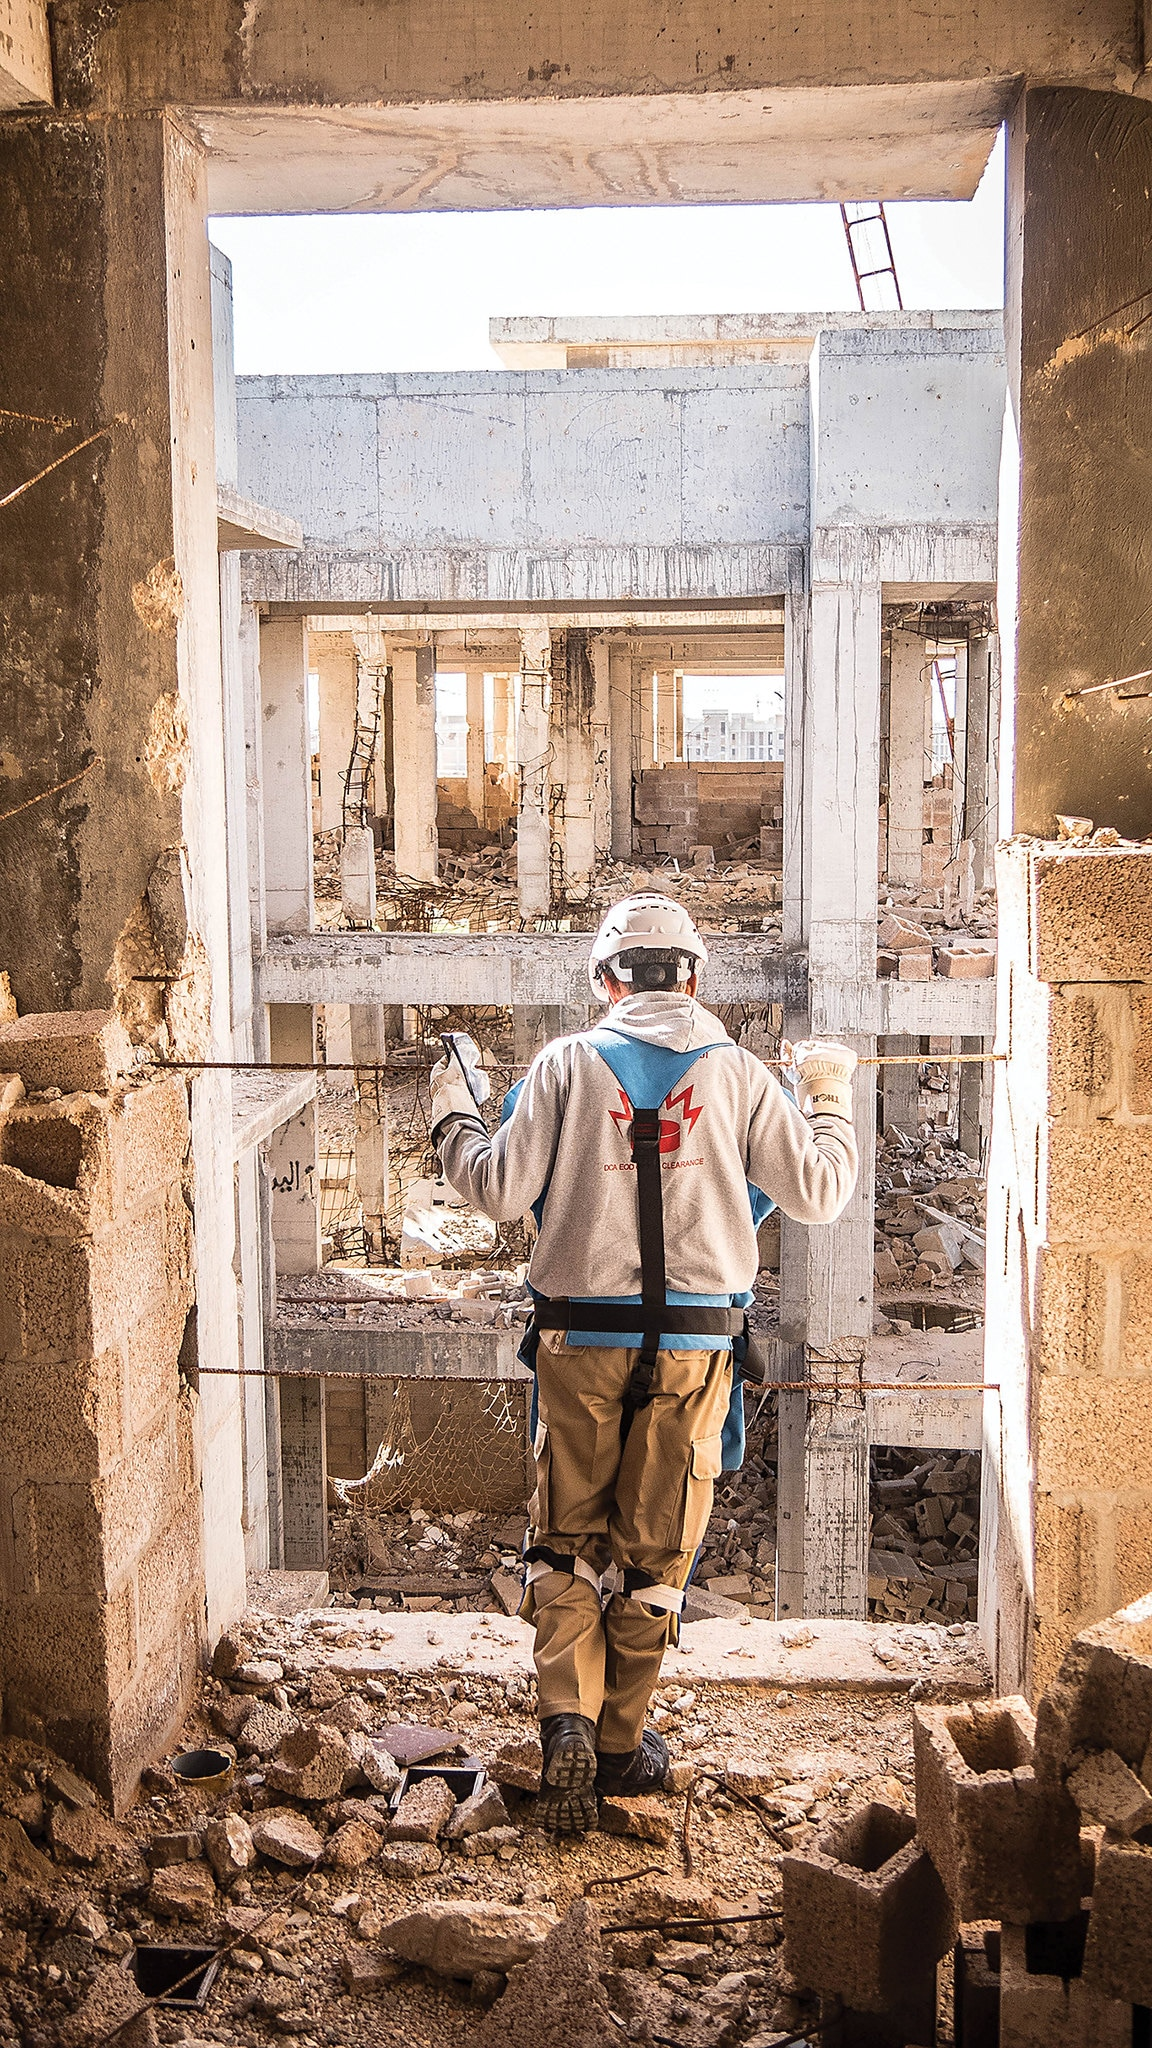 An EOD searcher views destruction in downtown Benghazi, Libya. [Photo courtesy of DCA]